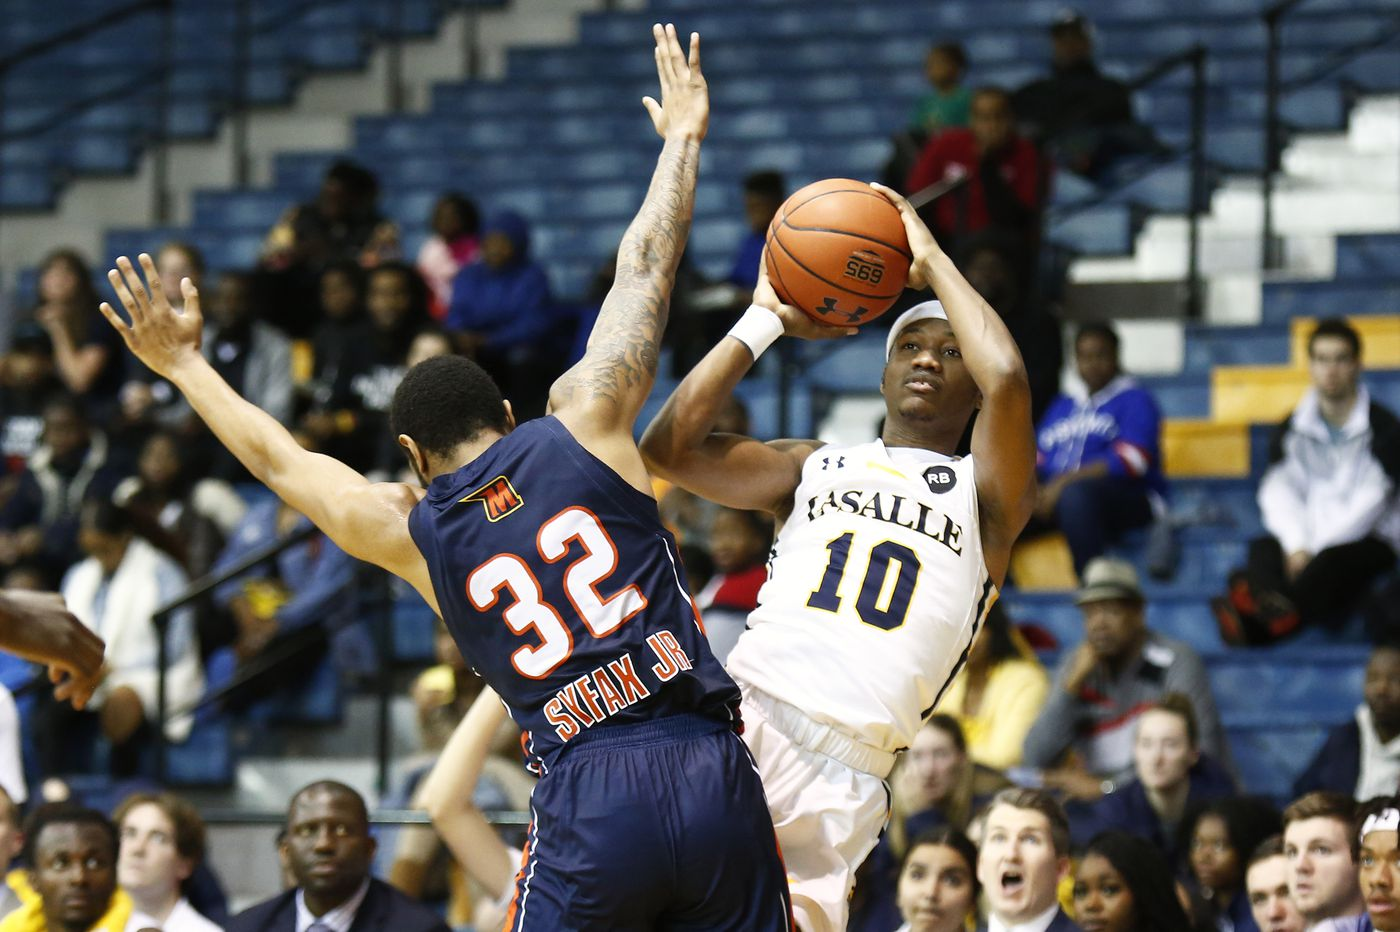 La Salle 85, Morgan State 68: Stats, highlights, and reaction from Explorers' win